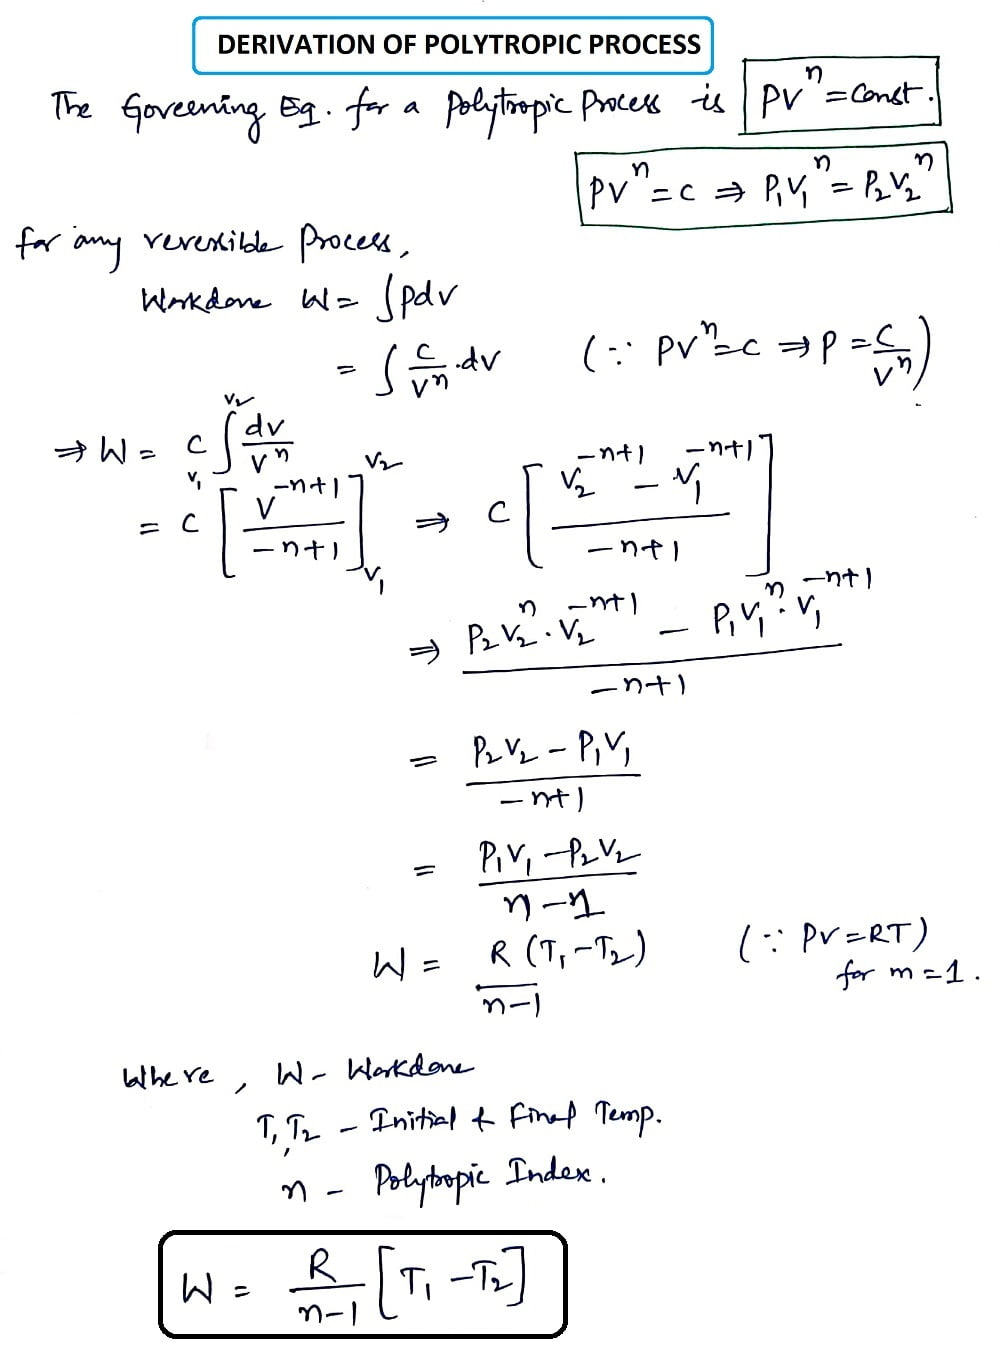 Derivation of Polytropic Process